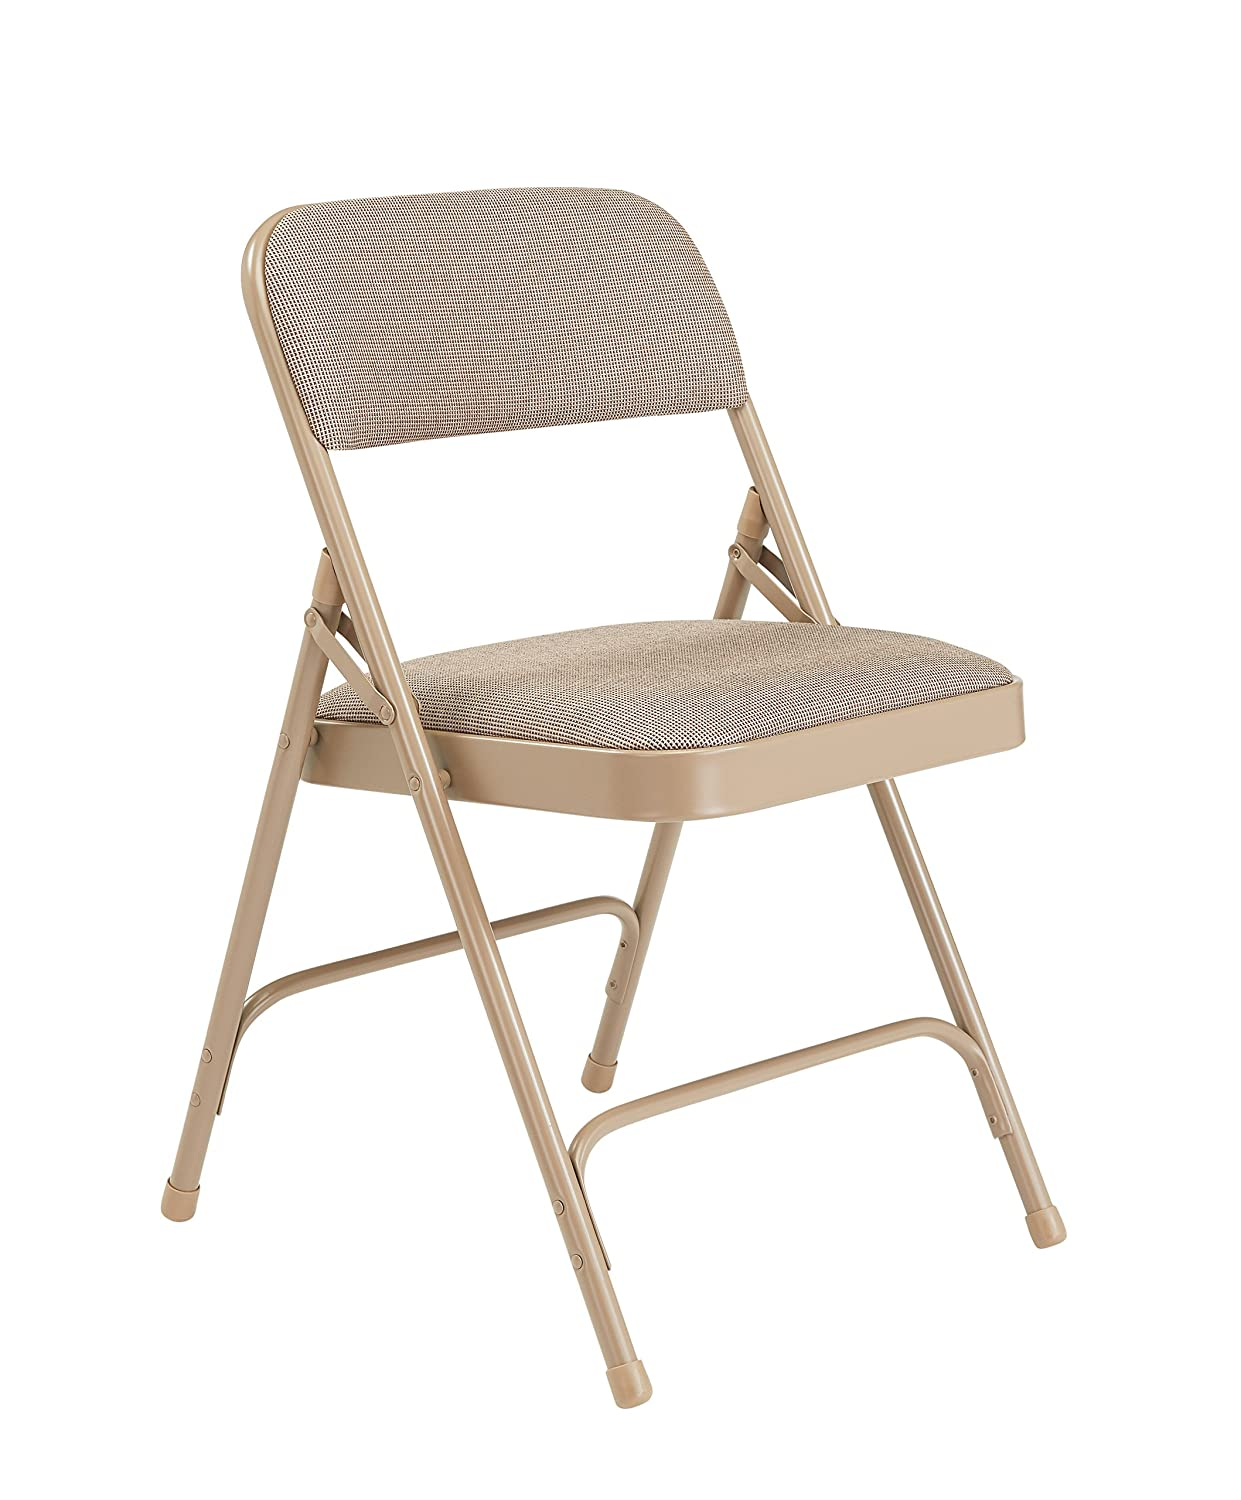 National Public Seating 2201 Series Steel Frame Upholstered Premium Fabric Seat and Back Folding Chair with Double Brace, 480 lbs Capacity, Cafe Beige Beige Carton of 4